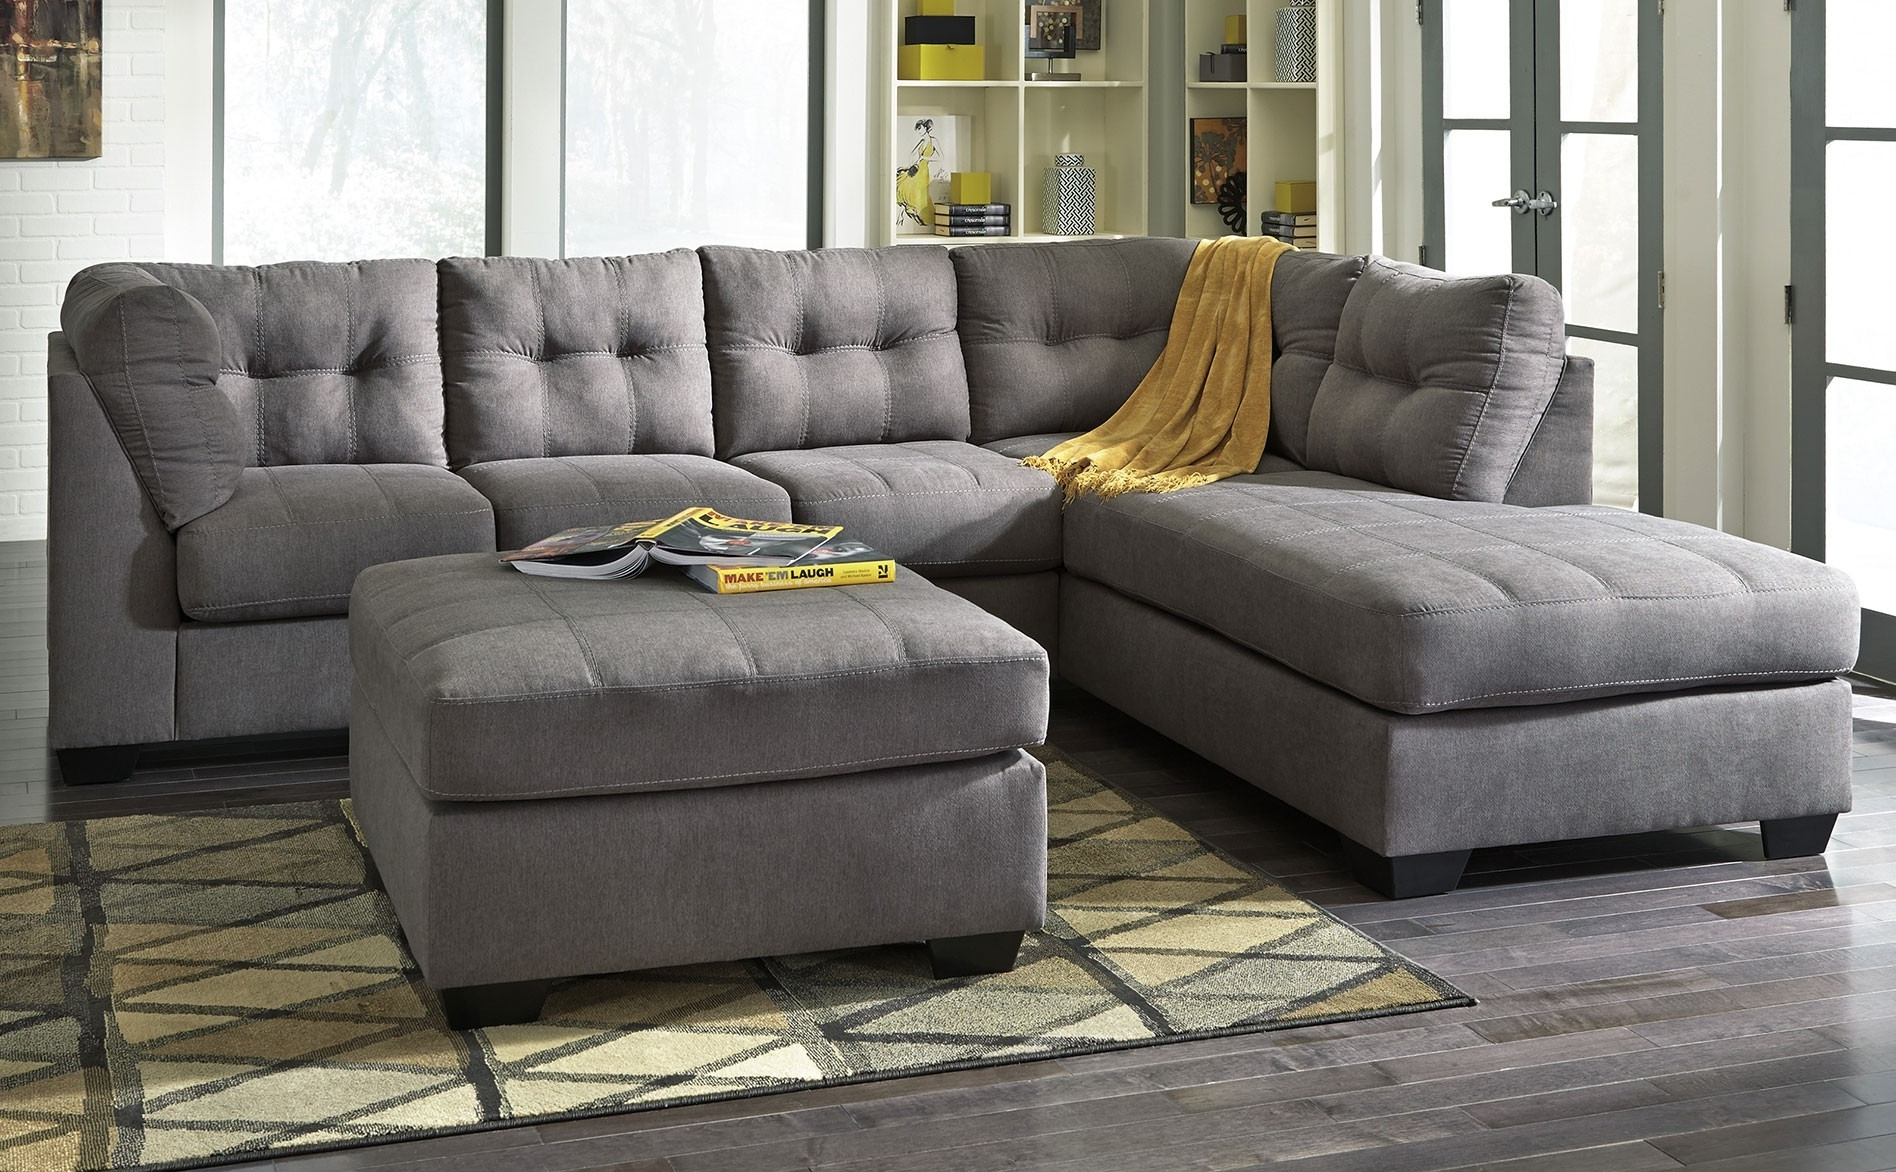 2017 Chaise Lounge Sectionals Within Best Ideas Of Sectionals With Chaise Lounge Also Living Room Grey (View 1 of 15)